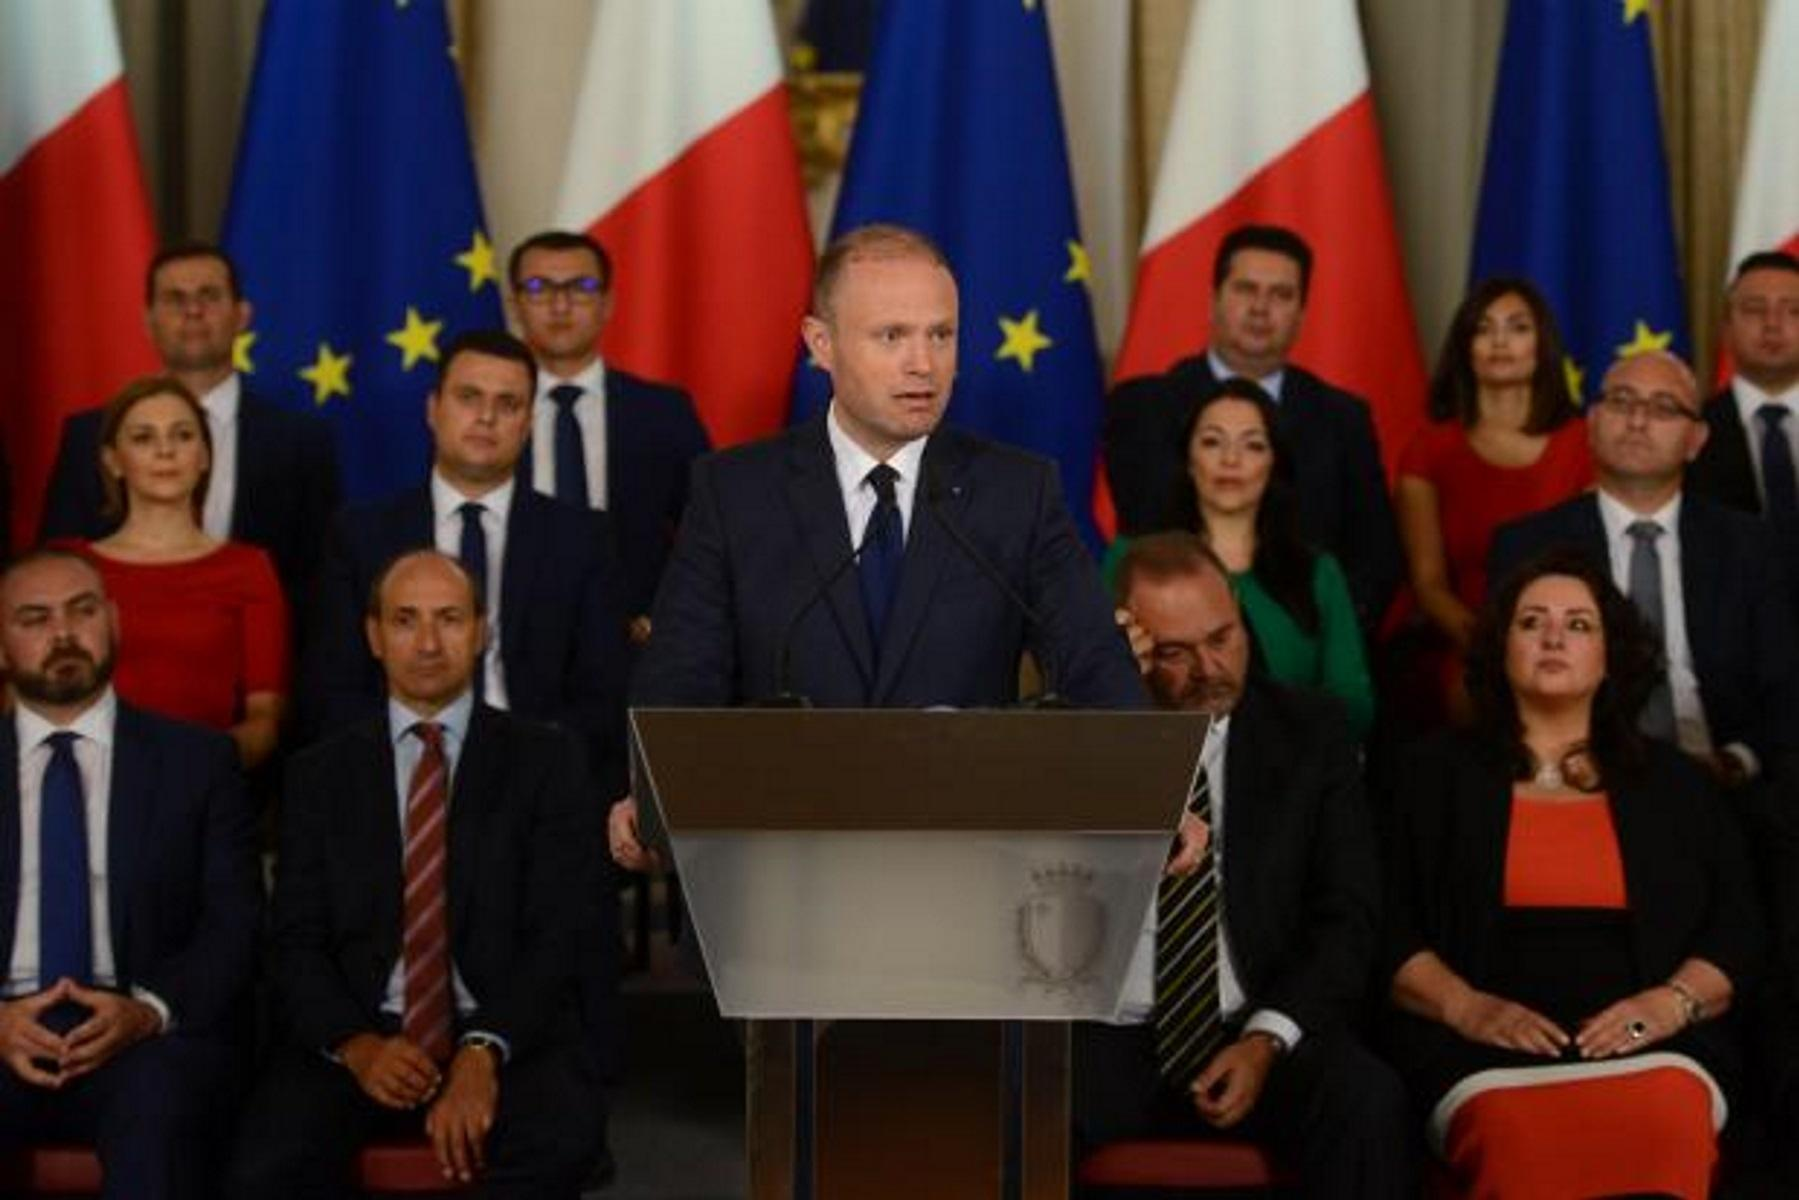 An emotional Prime Minister Joseph Muscat addressed the media the day the summary of the inquiry report was published.